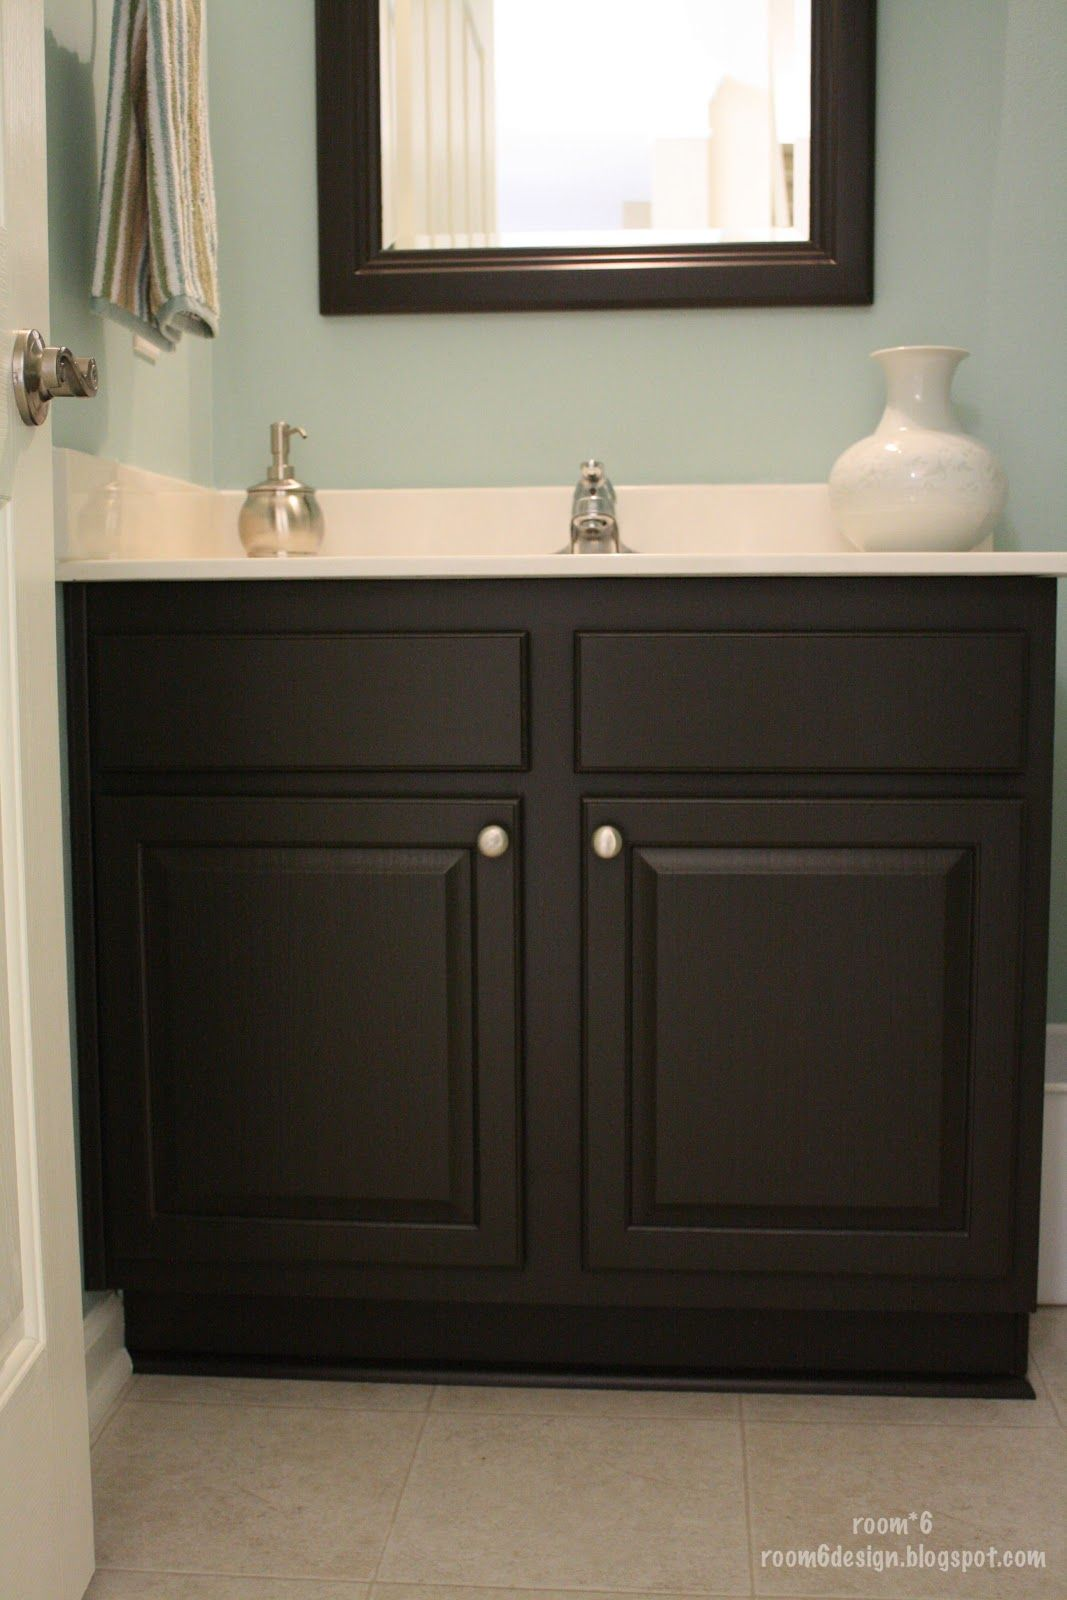 Photo Gallery On Website Oh I want to paint our bathroom cabinet